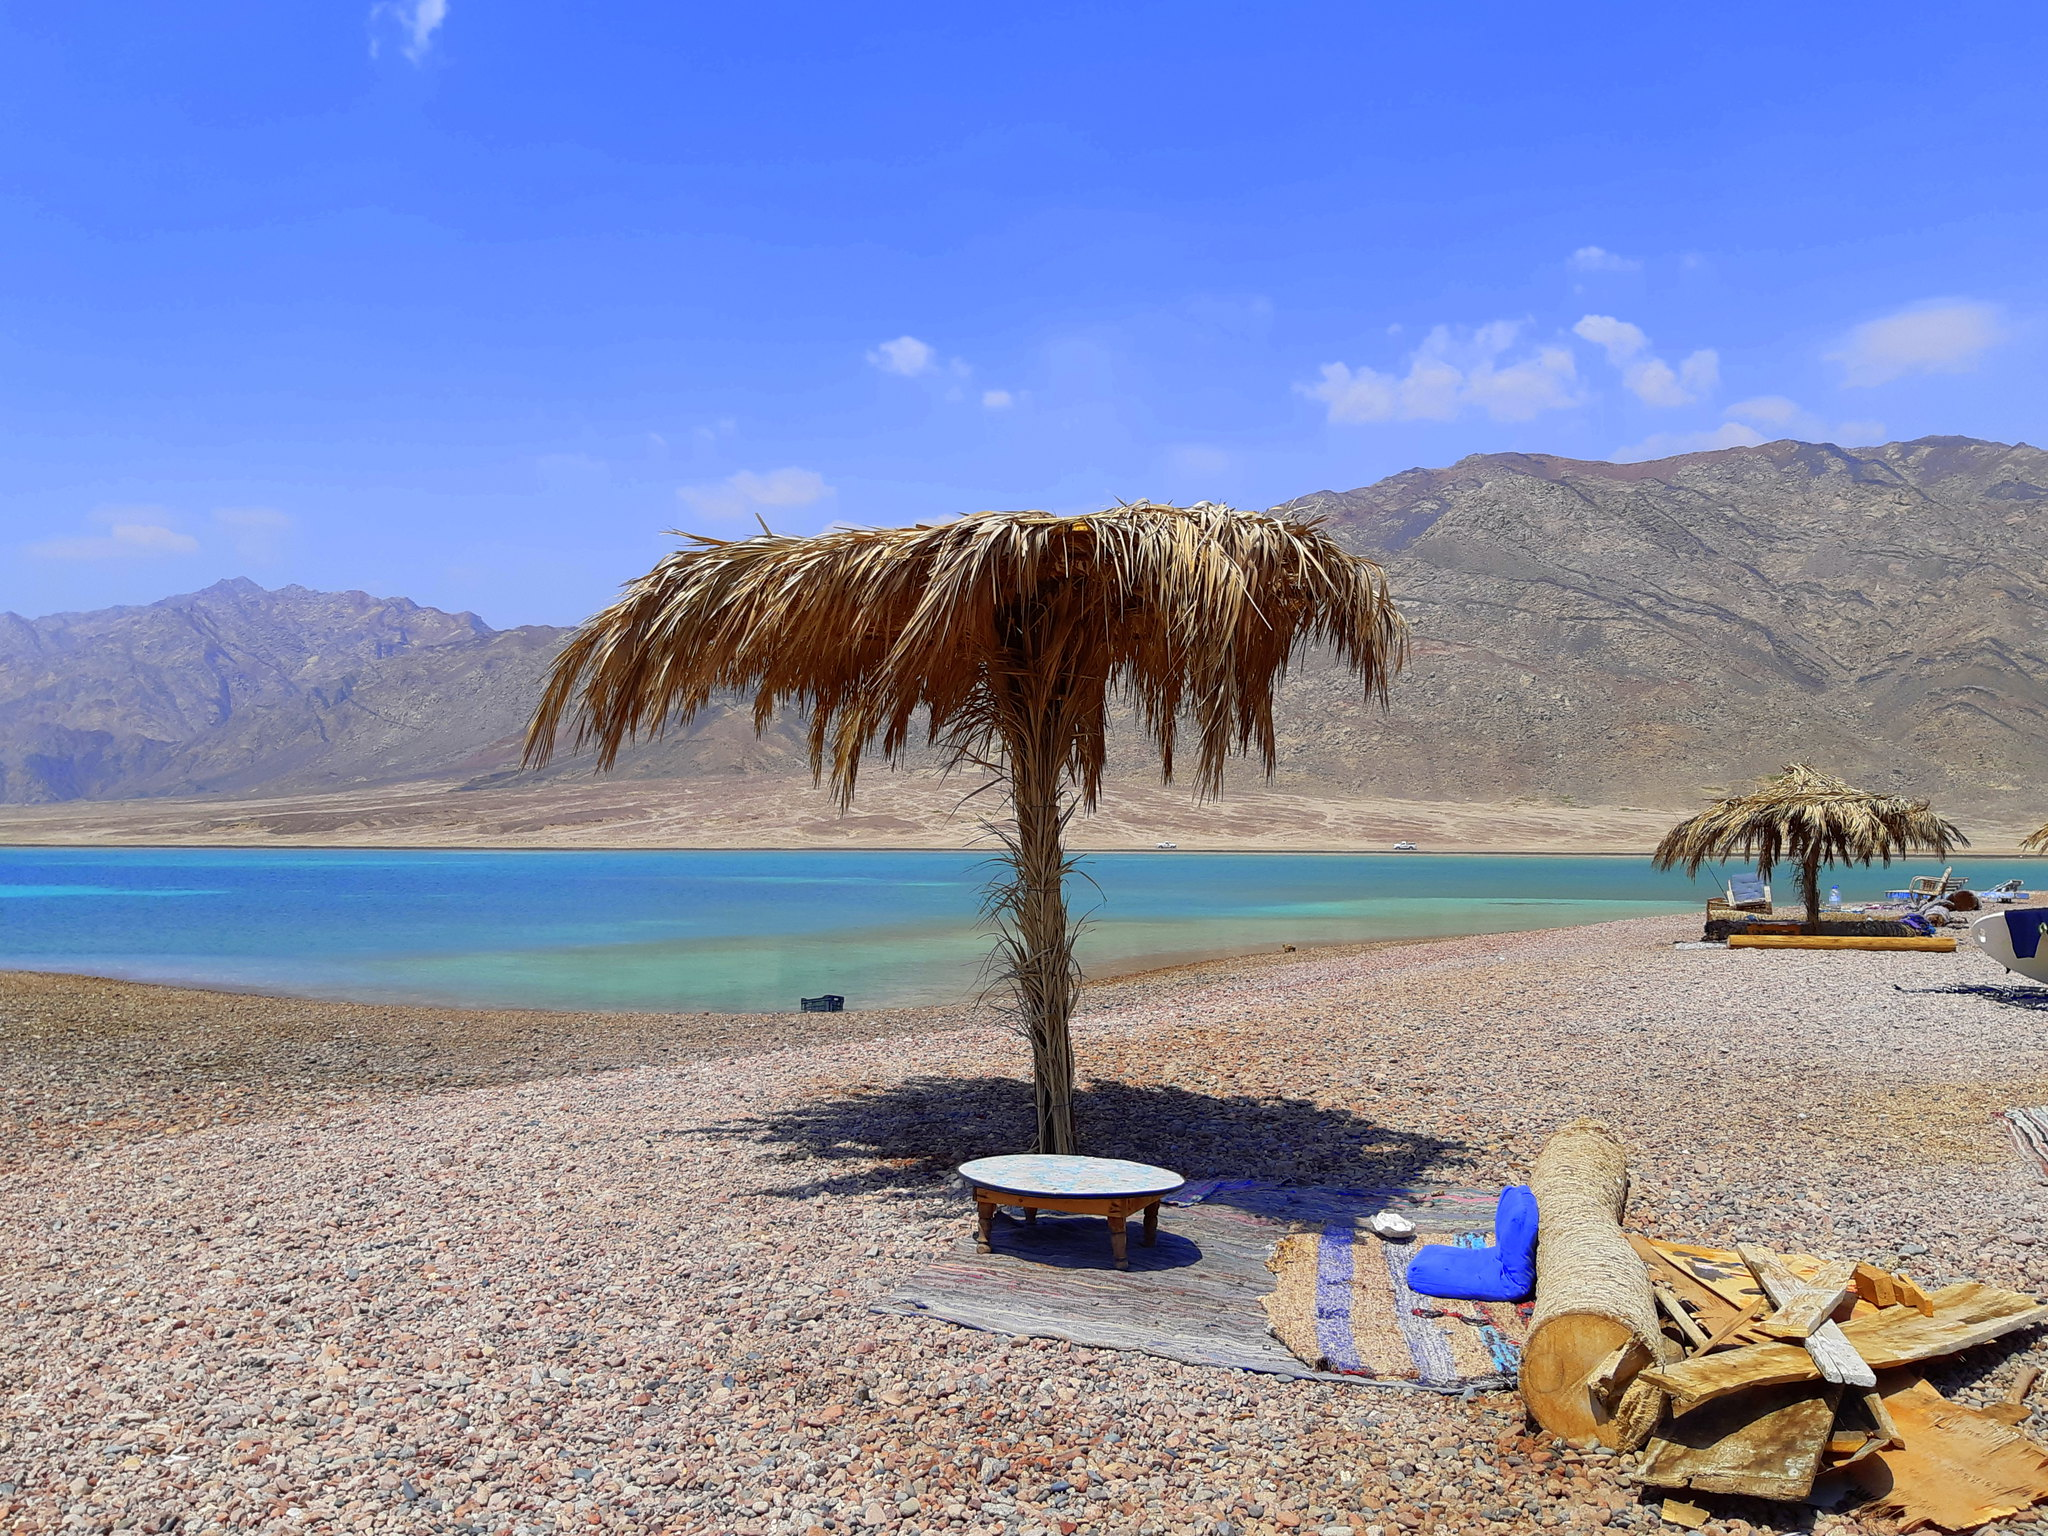 Dahab has sunshine throughout the year